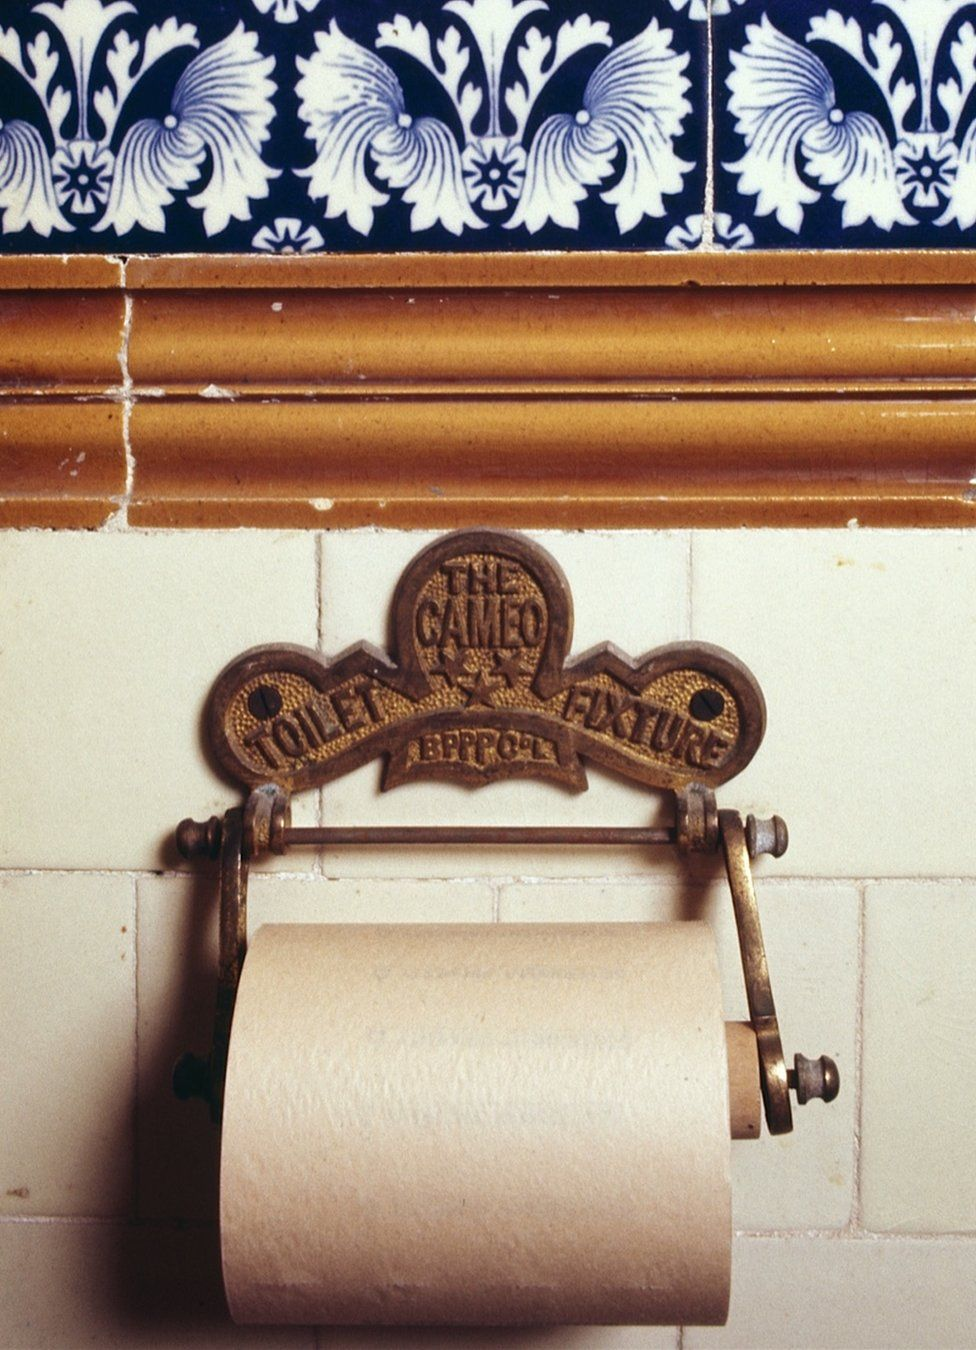 An early toilet roll holder designed by the British Perforated Paper Company